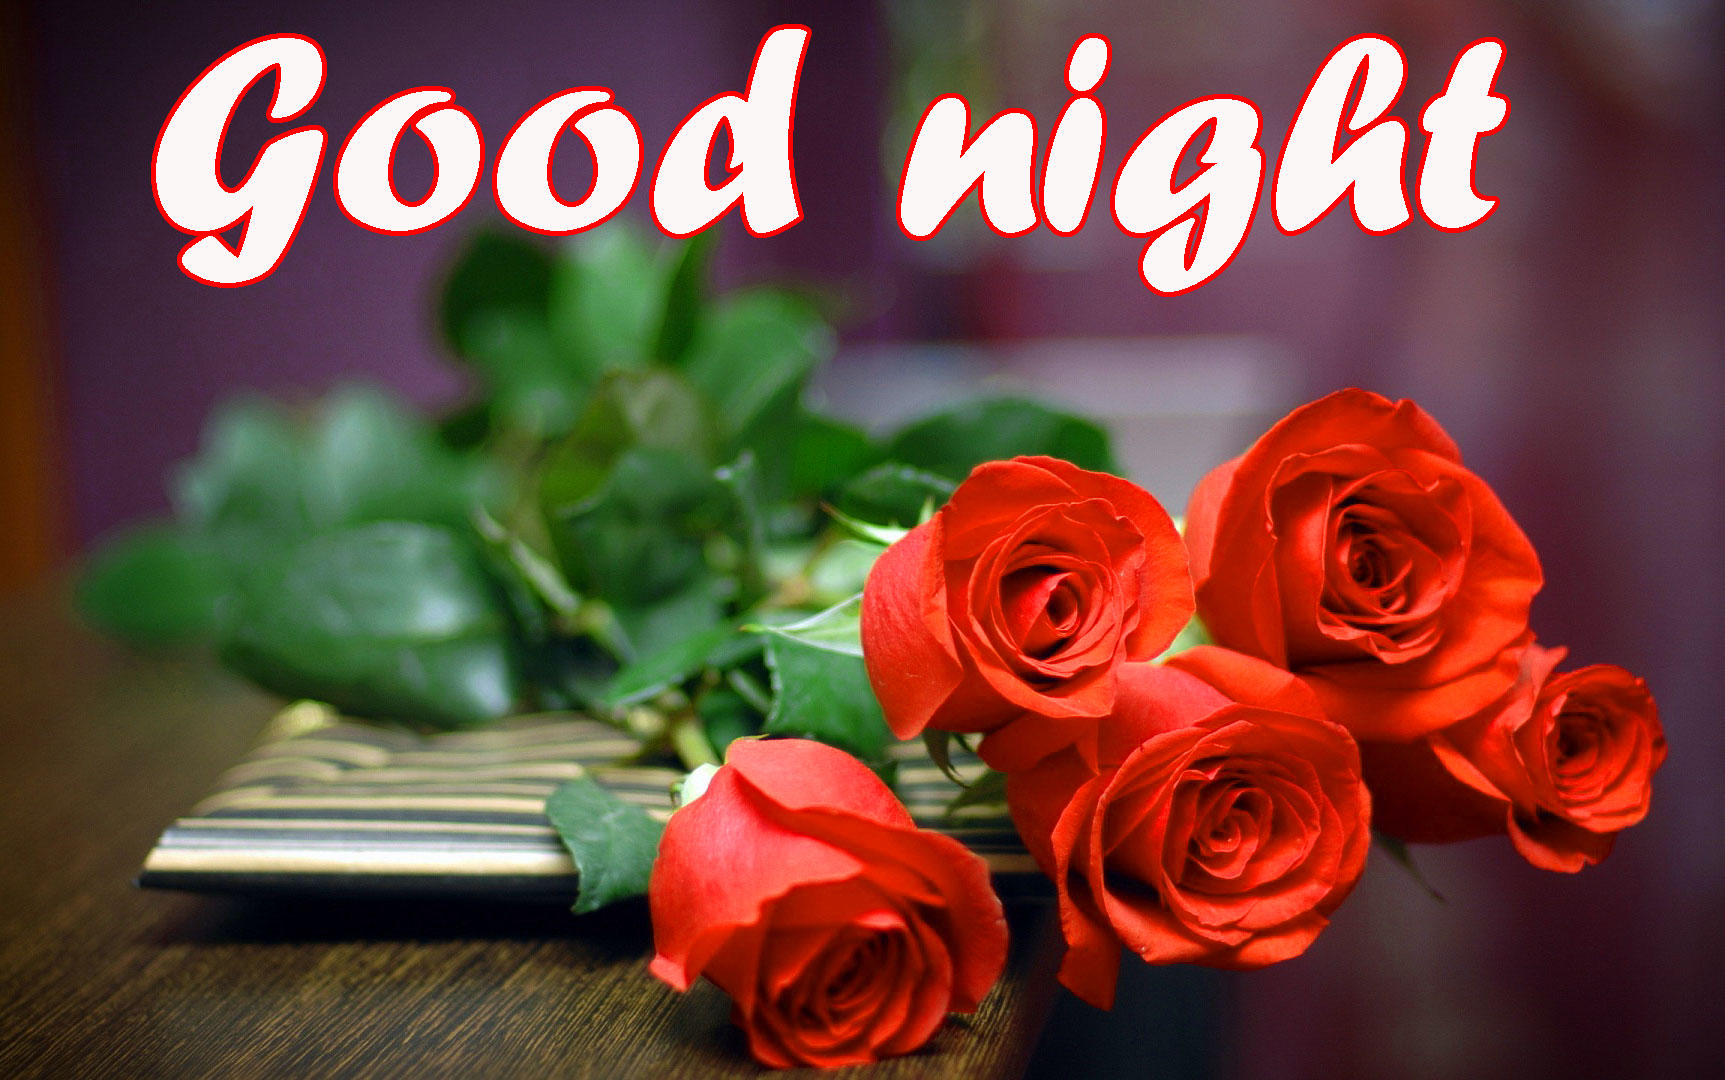 RED ROSE GOOD NIGHT WISHES IMAGES PHOTO PICS FREE DOWNLOAD